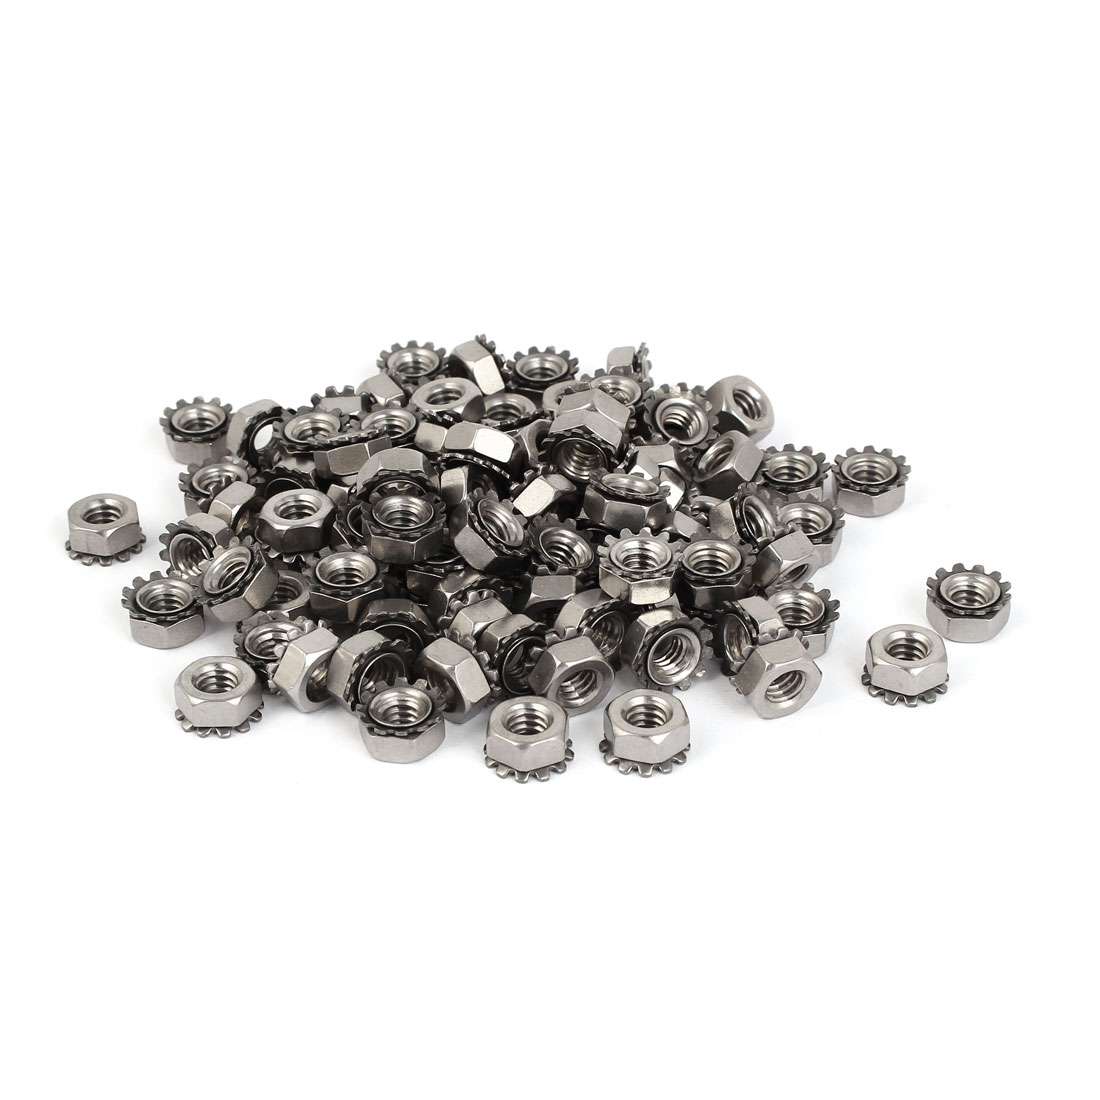 "1/4""-20 304 Stainless Steel Female Thread Kep Hex Head Lock Nut 100pcs"